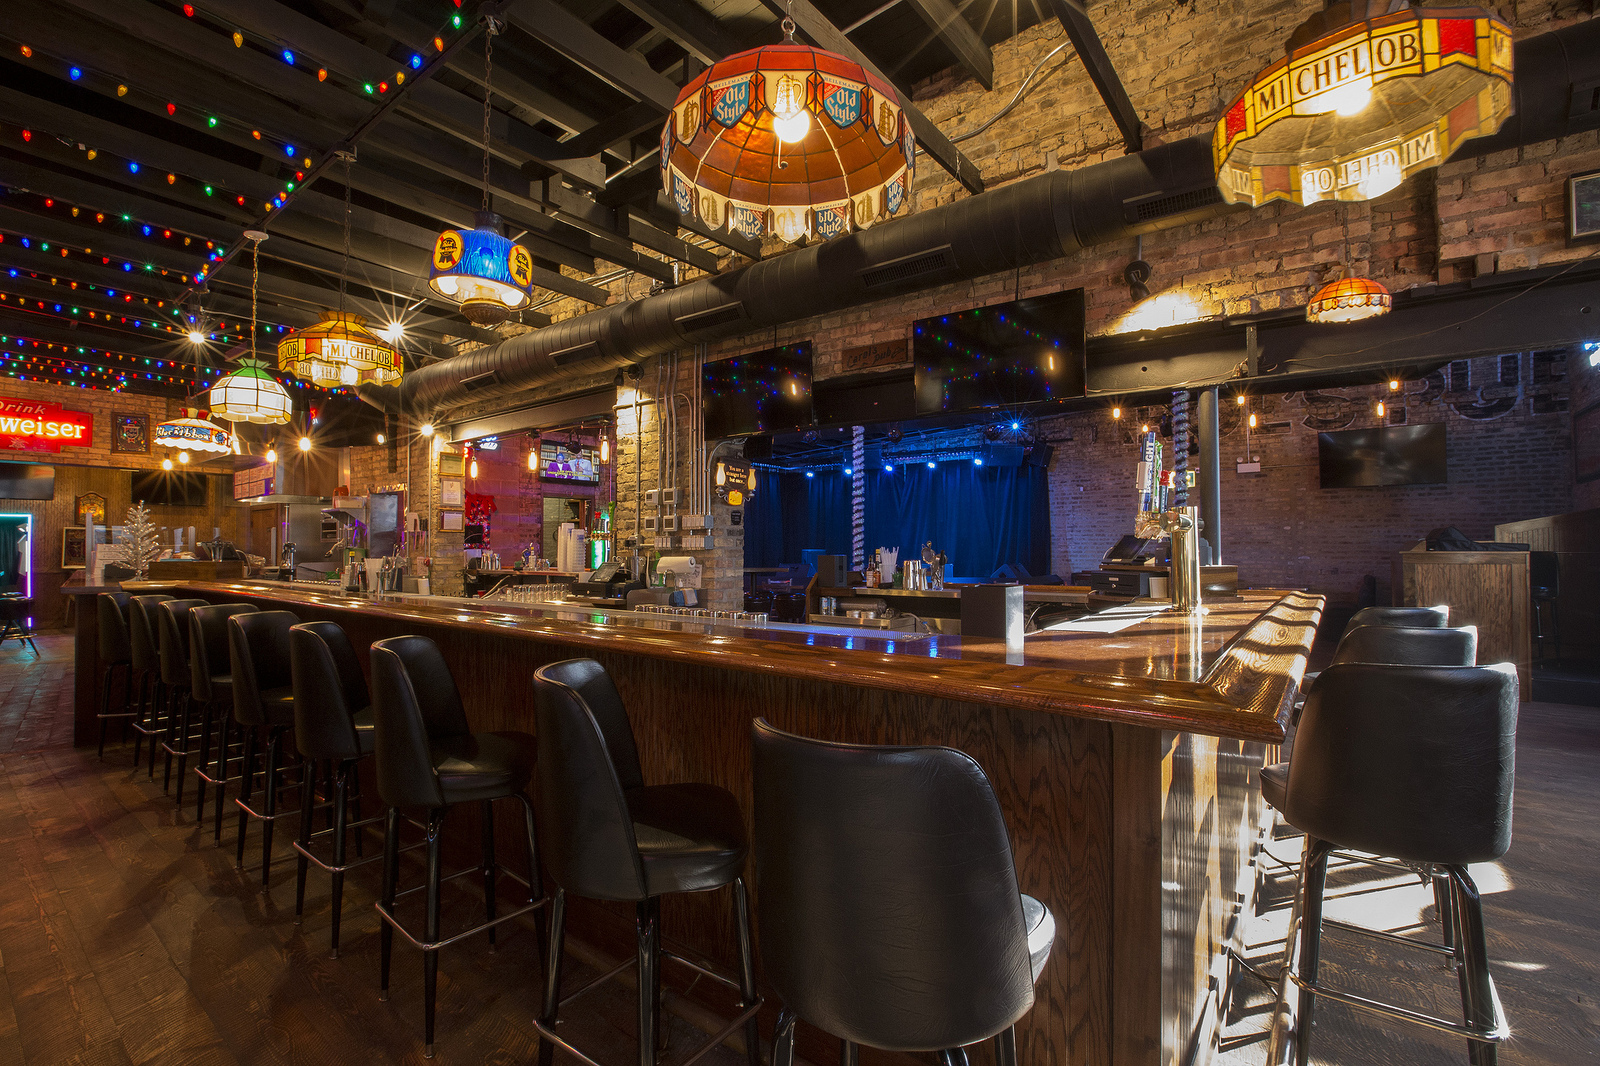 Carol's Pub's interior features hanging lights, black bar stools, a brand new bar, and a musical stage